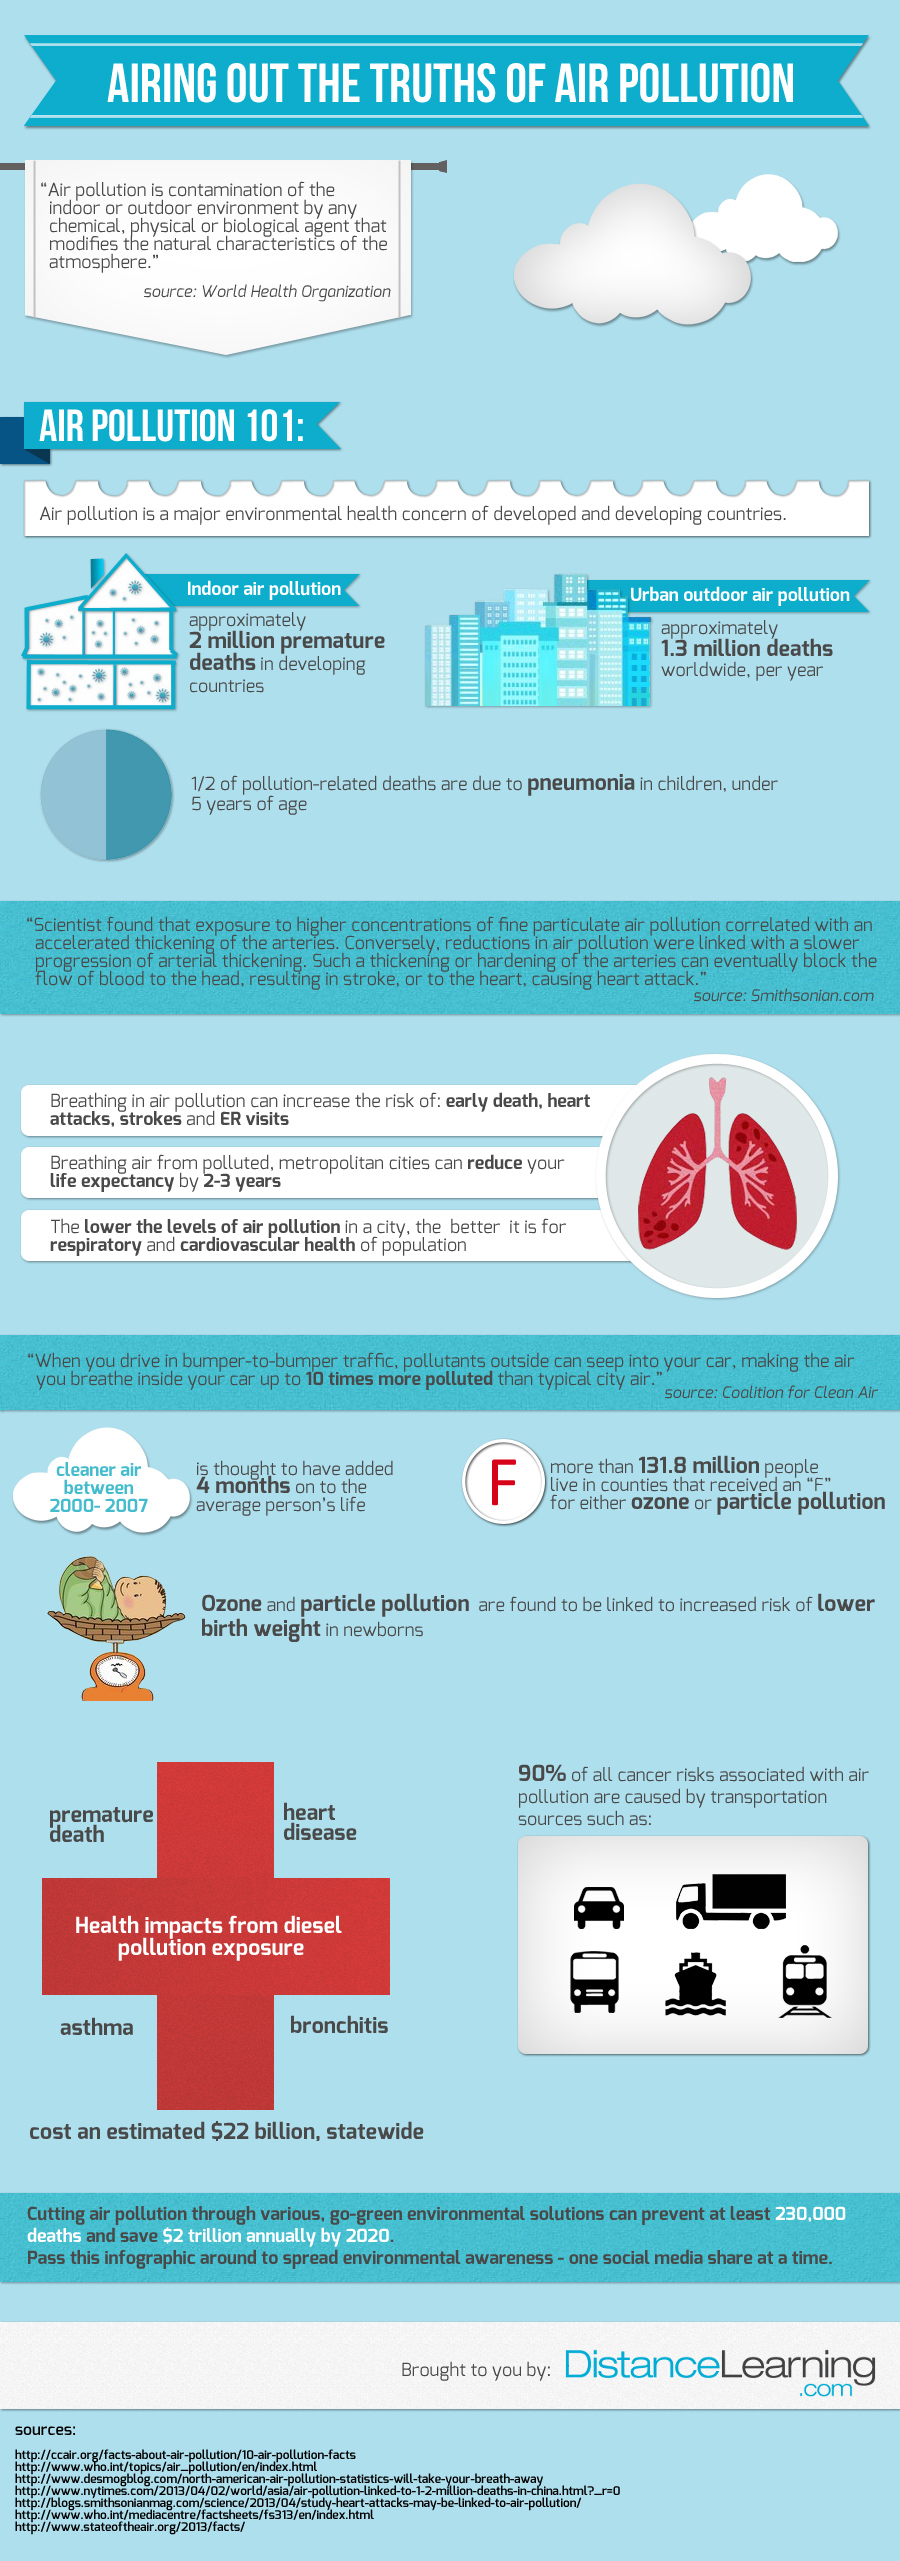 airing-out-the-truths-of-air-pollution_521611c57e849